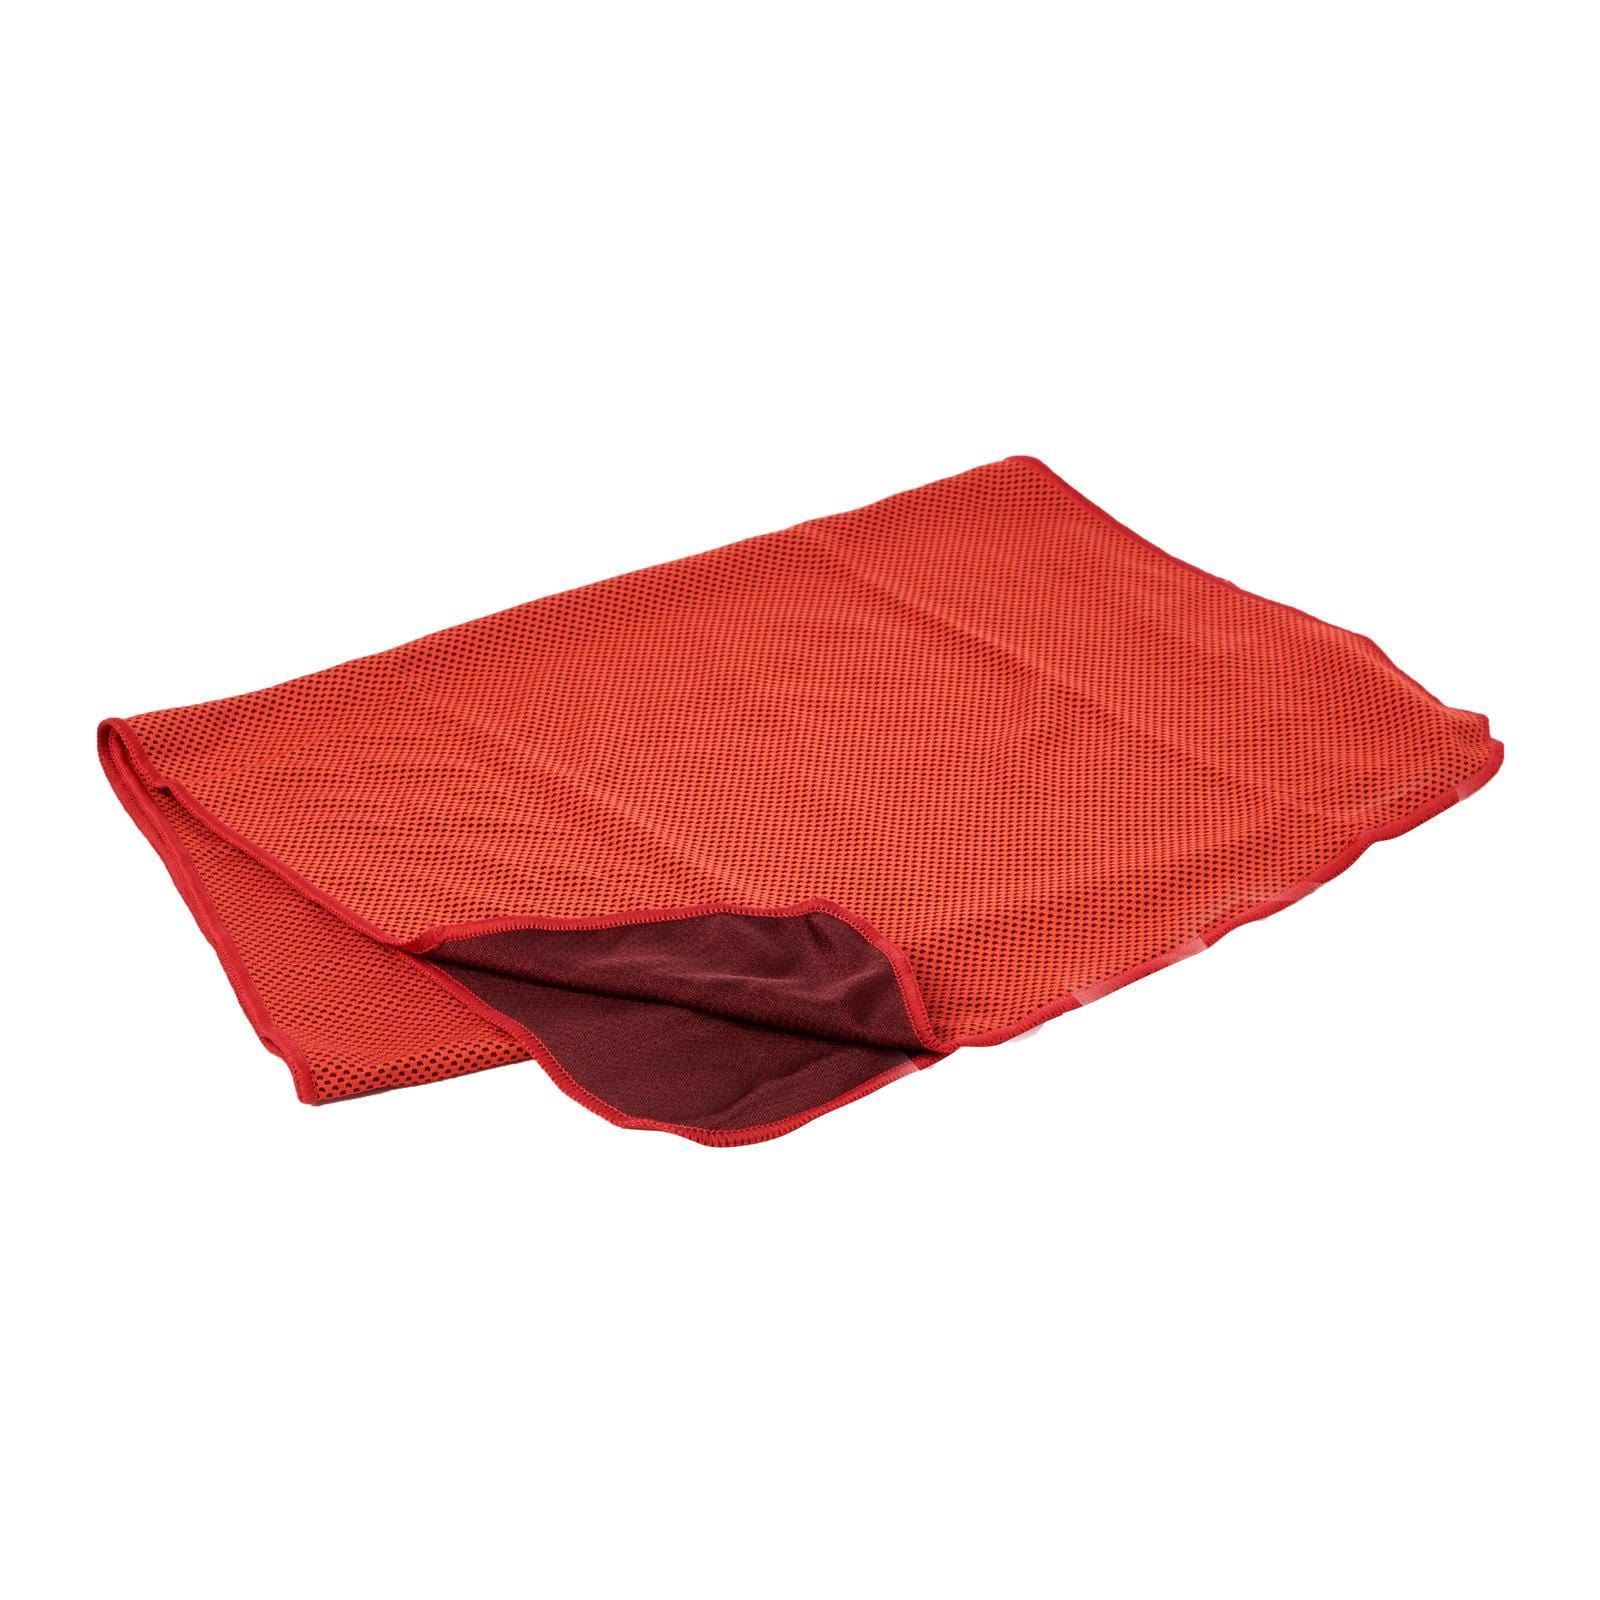 Coolite Sports Towel In Red